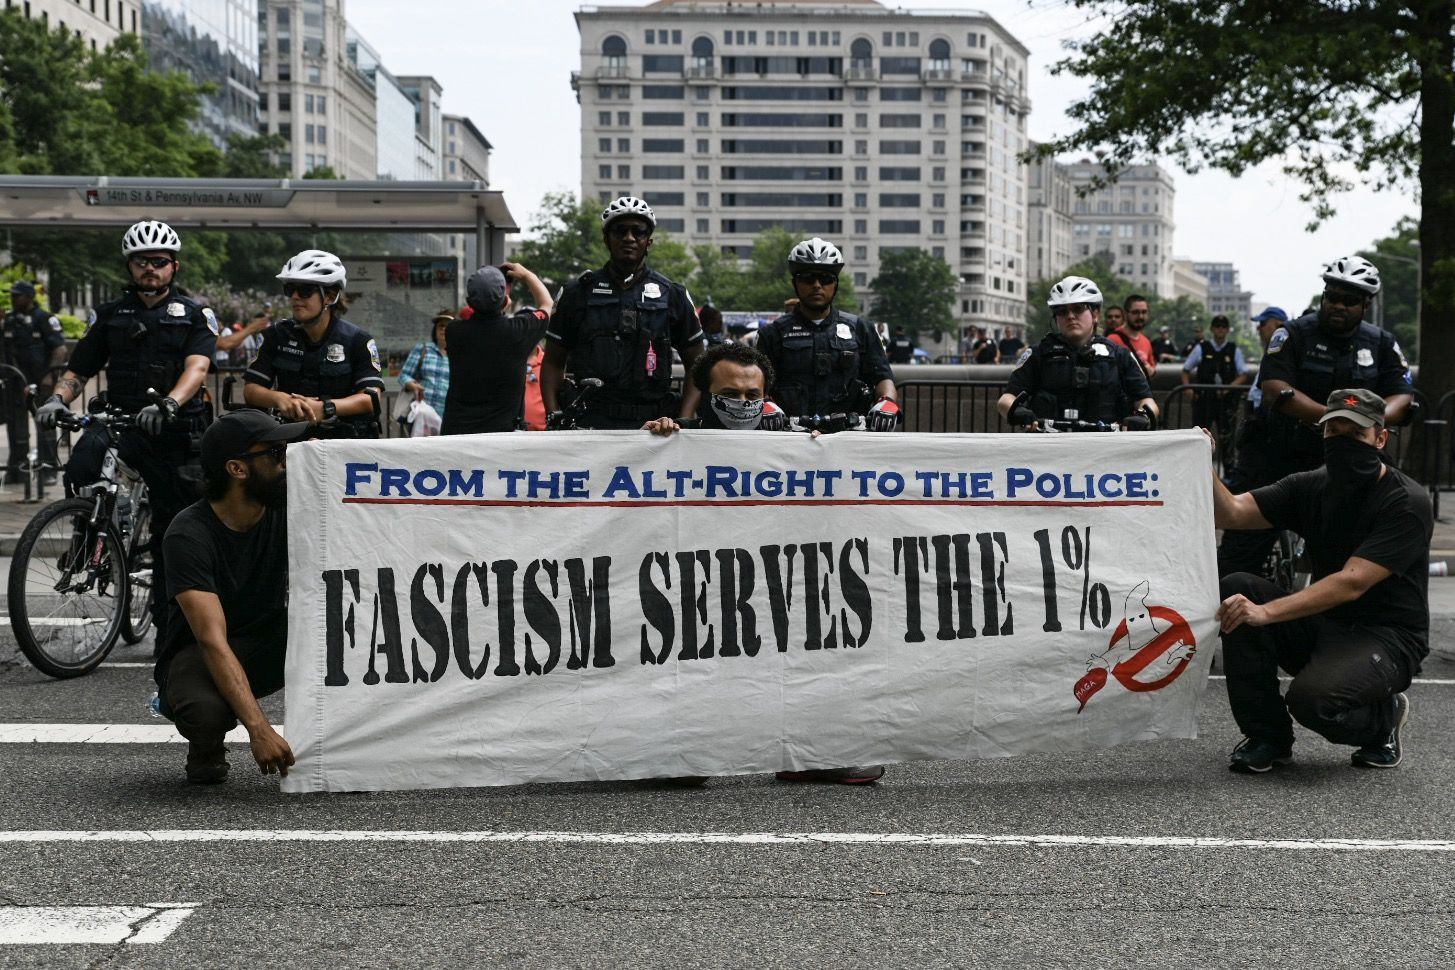 Antifa protesters pose with a sign in front of Washington, D.C. police officers, as members of the far-right rally against conservative censorship in social media. Trump supporters and anti-fascist organizers held dueling rallies across the street from each other, leading to high tensions as D.C. and U.S. Park Police largely held the peace. (WTOP/Alejandro Alvarez)